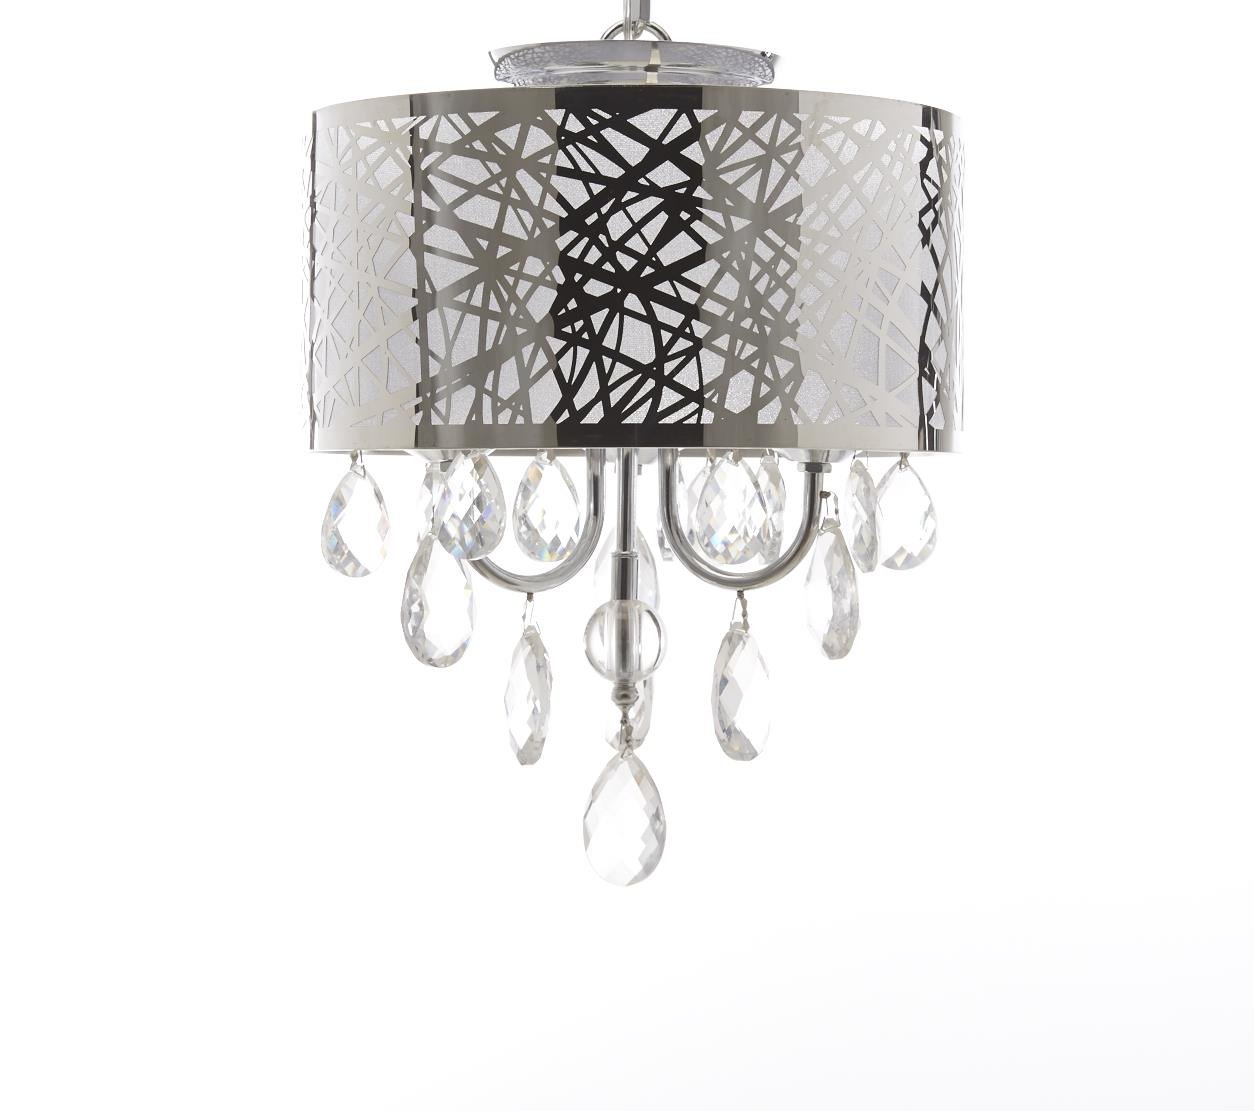 Diamond Life 4-Light Chrome Round Metal Shade Crystal Chandelier Pendant Hanging Ceiling Fixture